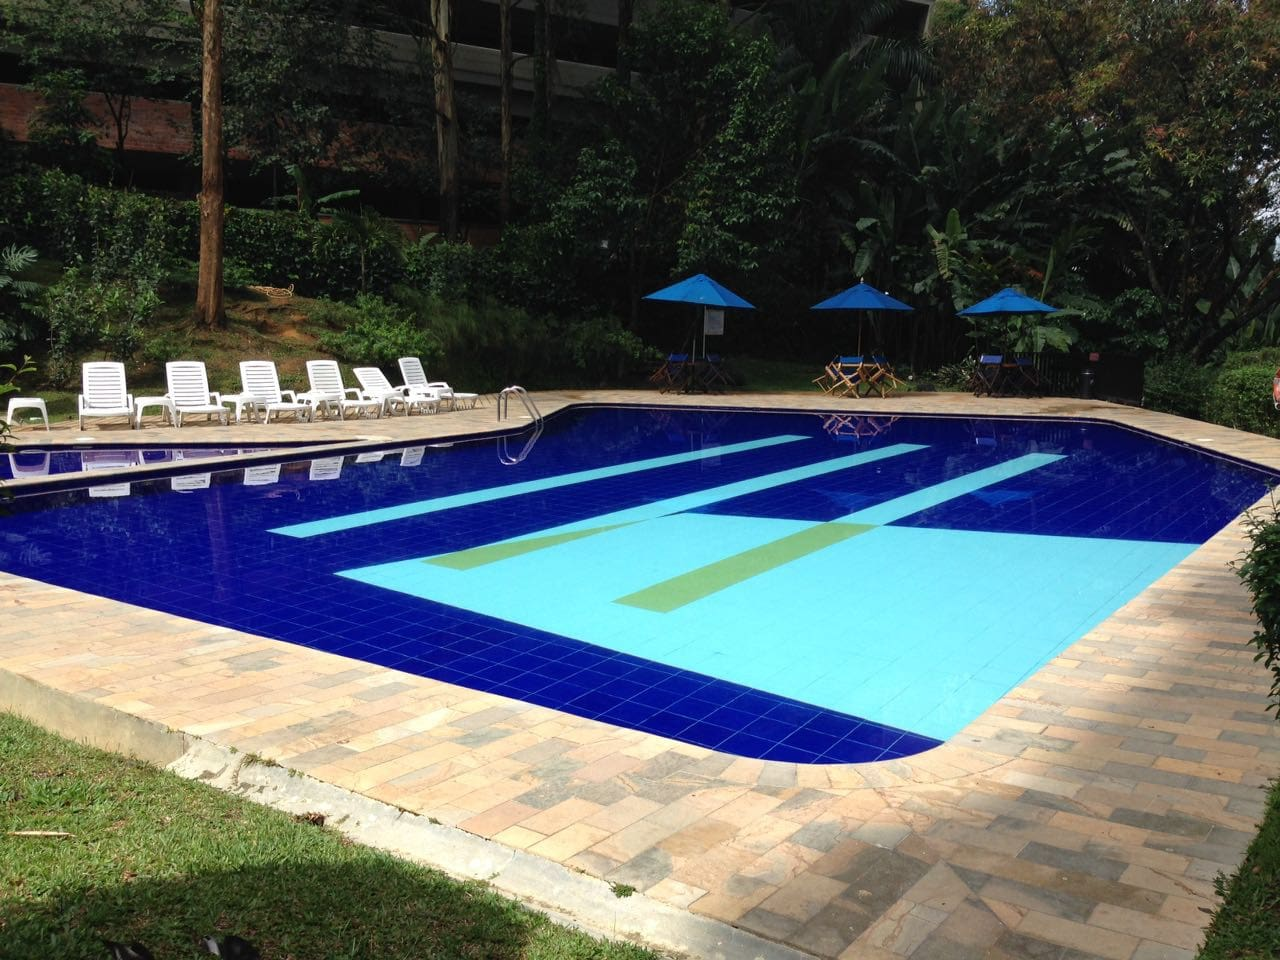 Huge pool to cool off, relax, get rid of all stress and meet the beautiful locals.